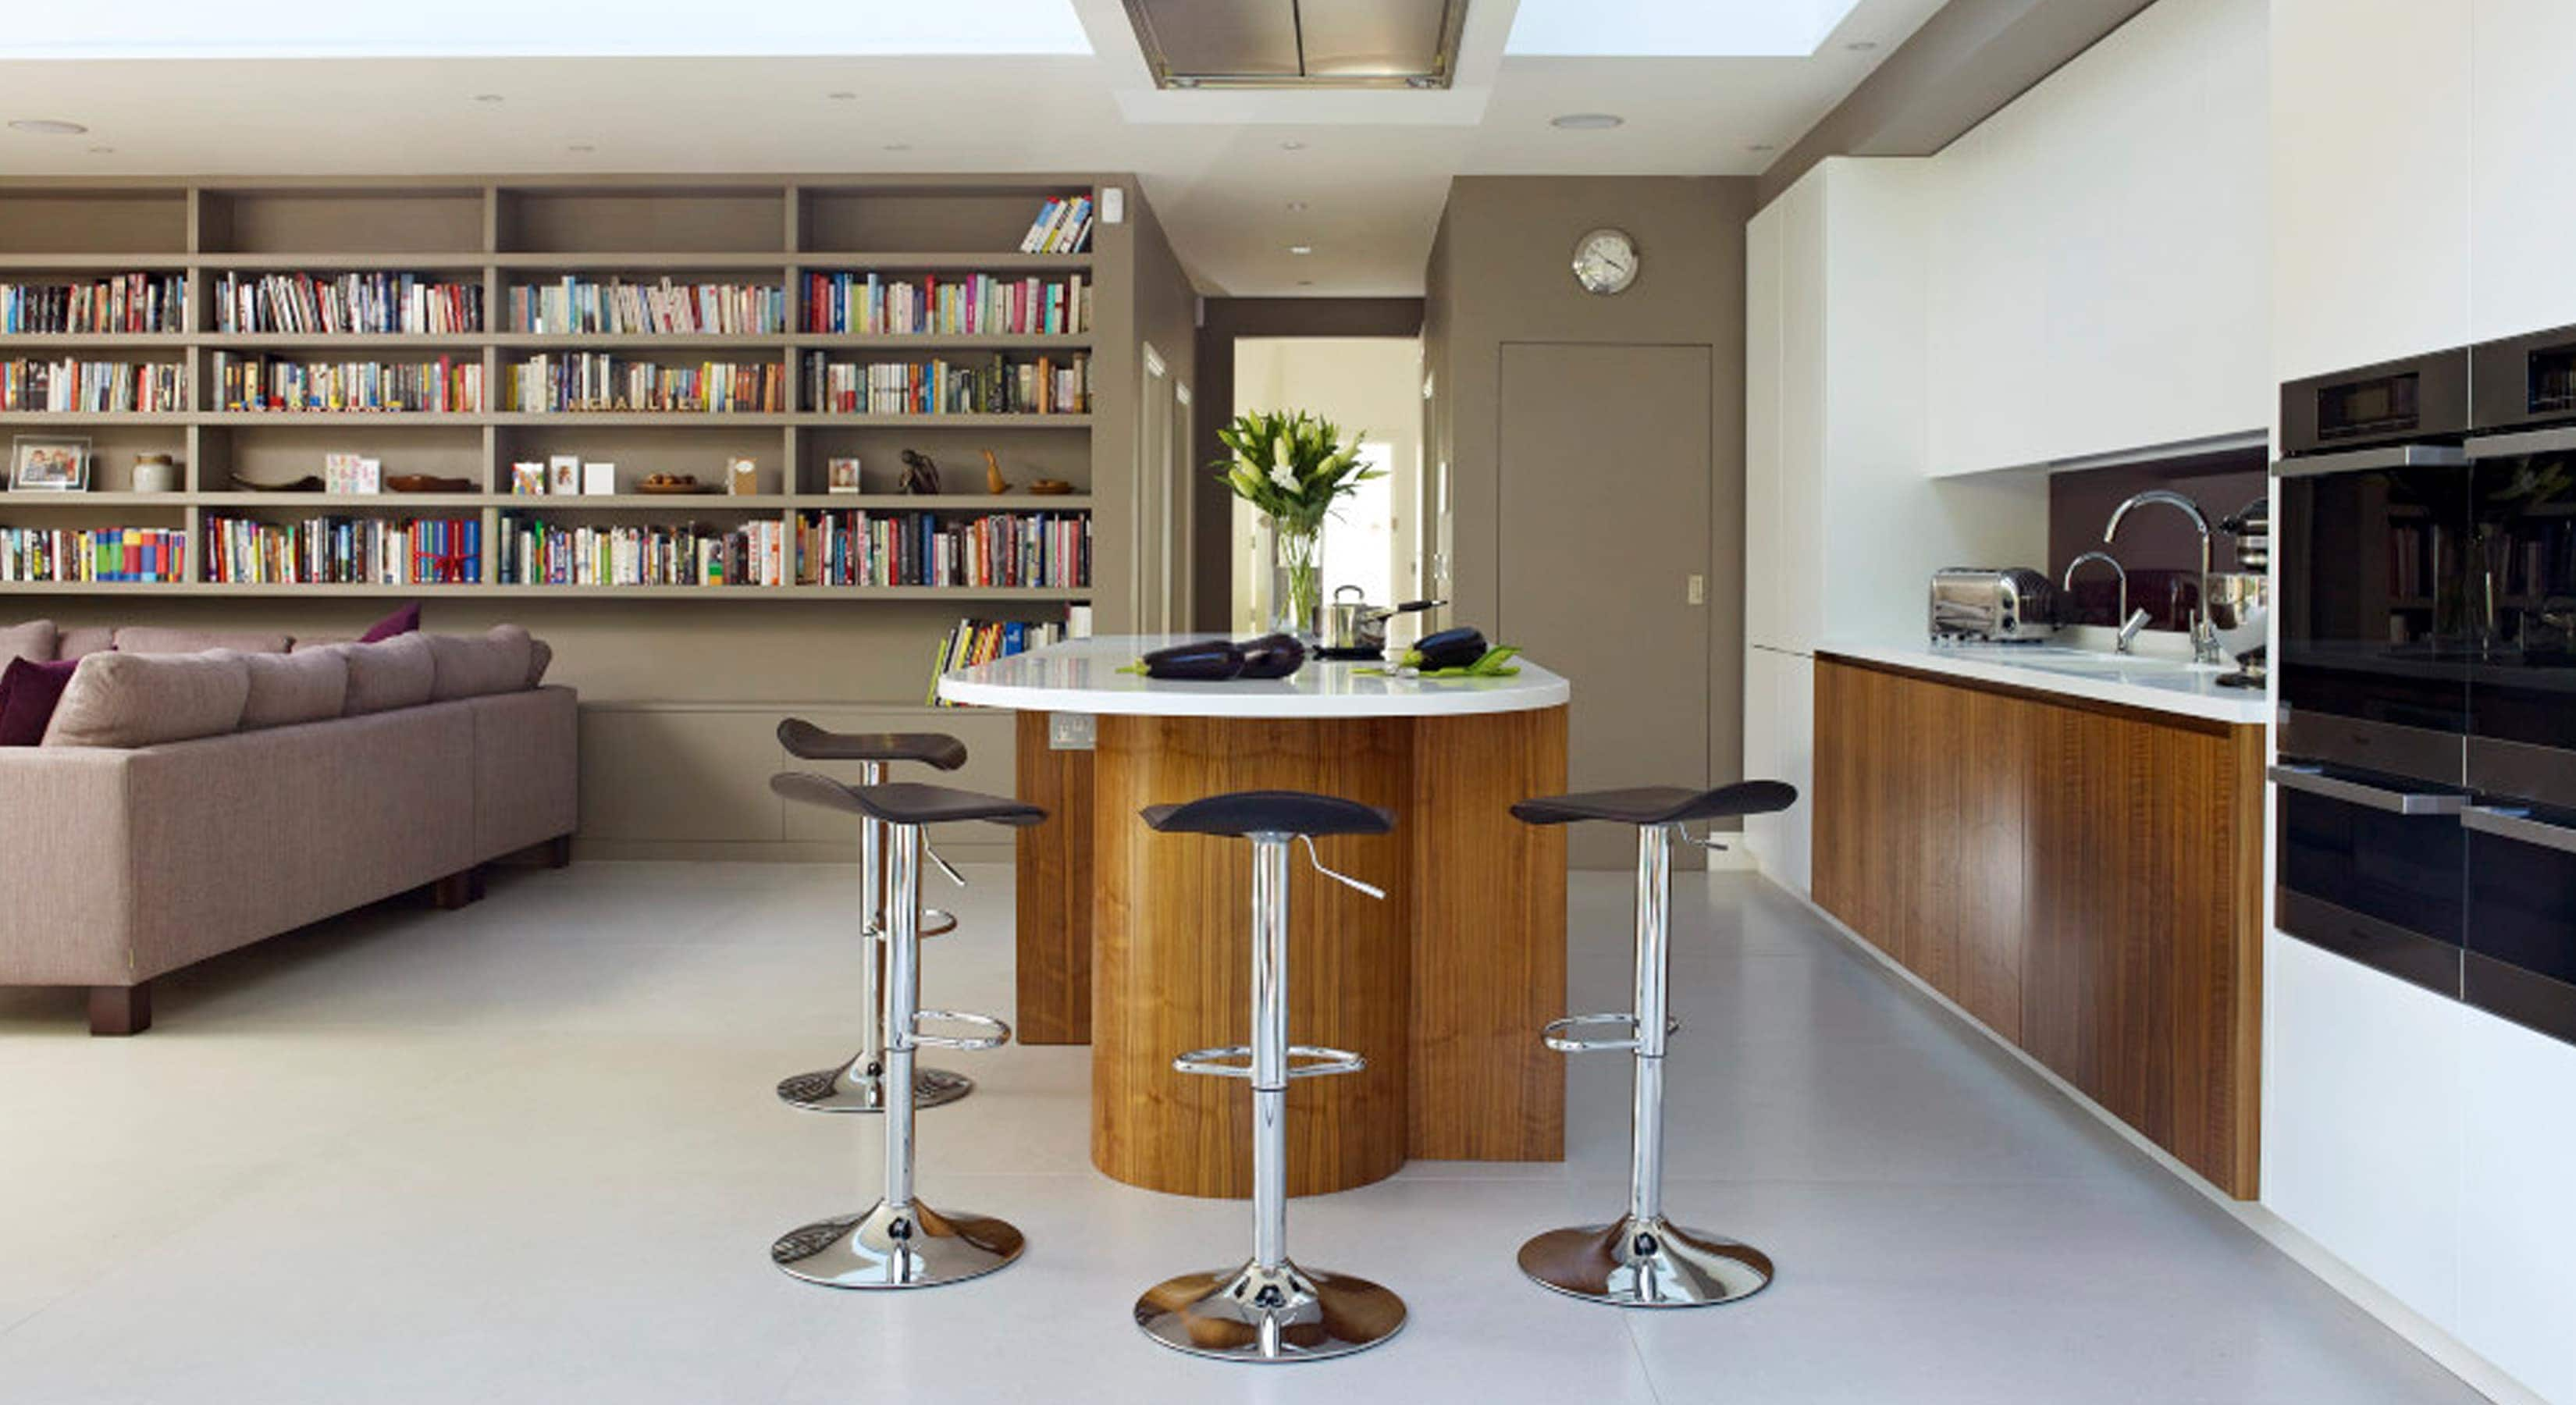 White and wood kitchen concept with rounded island